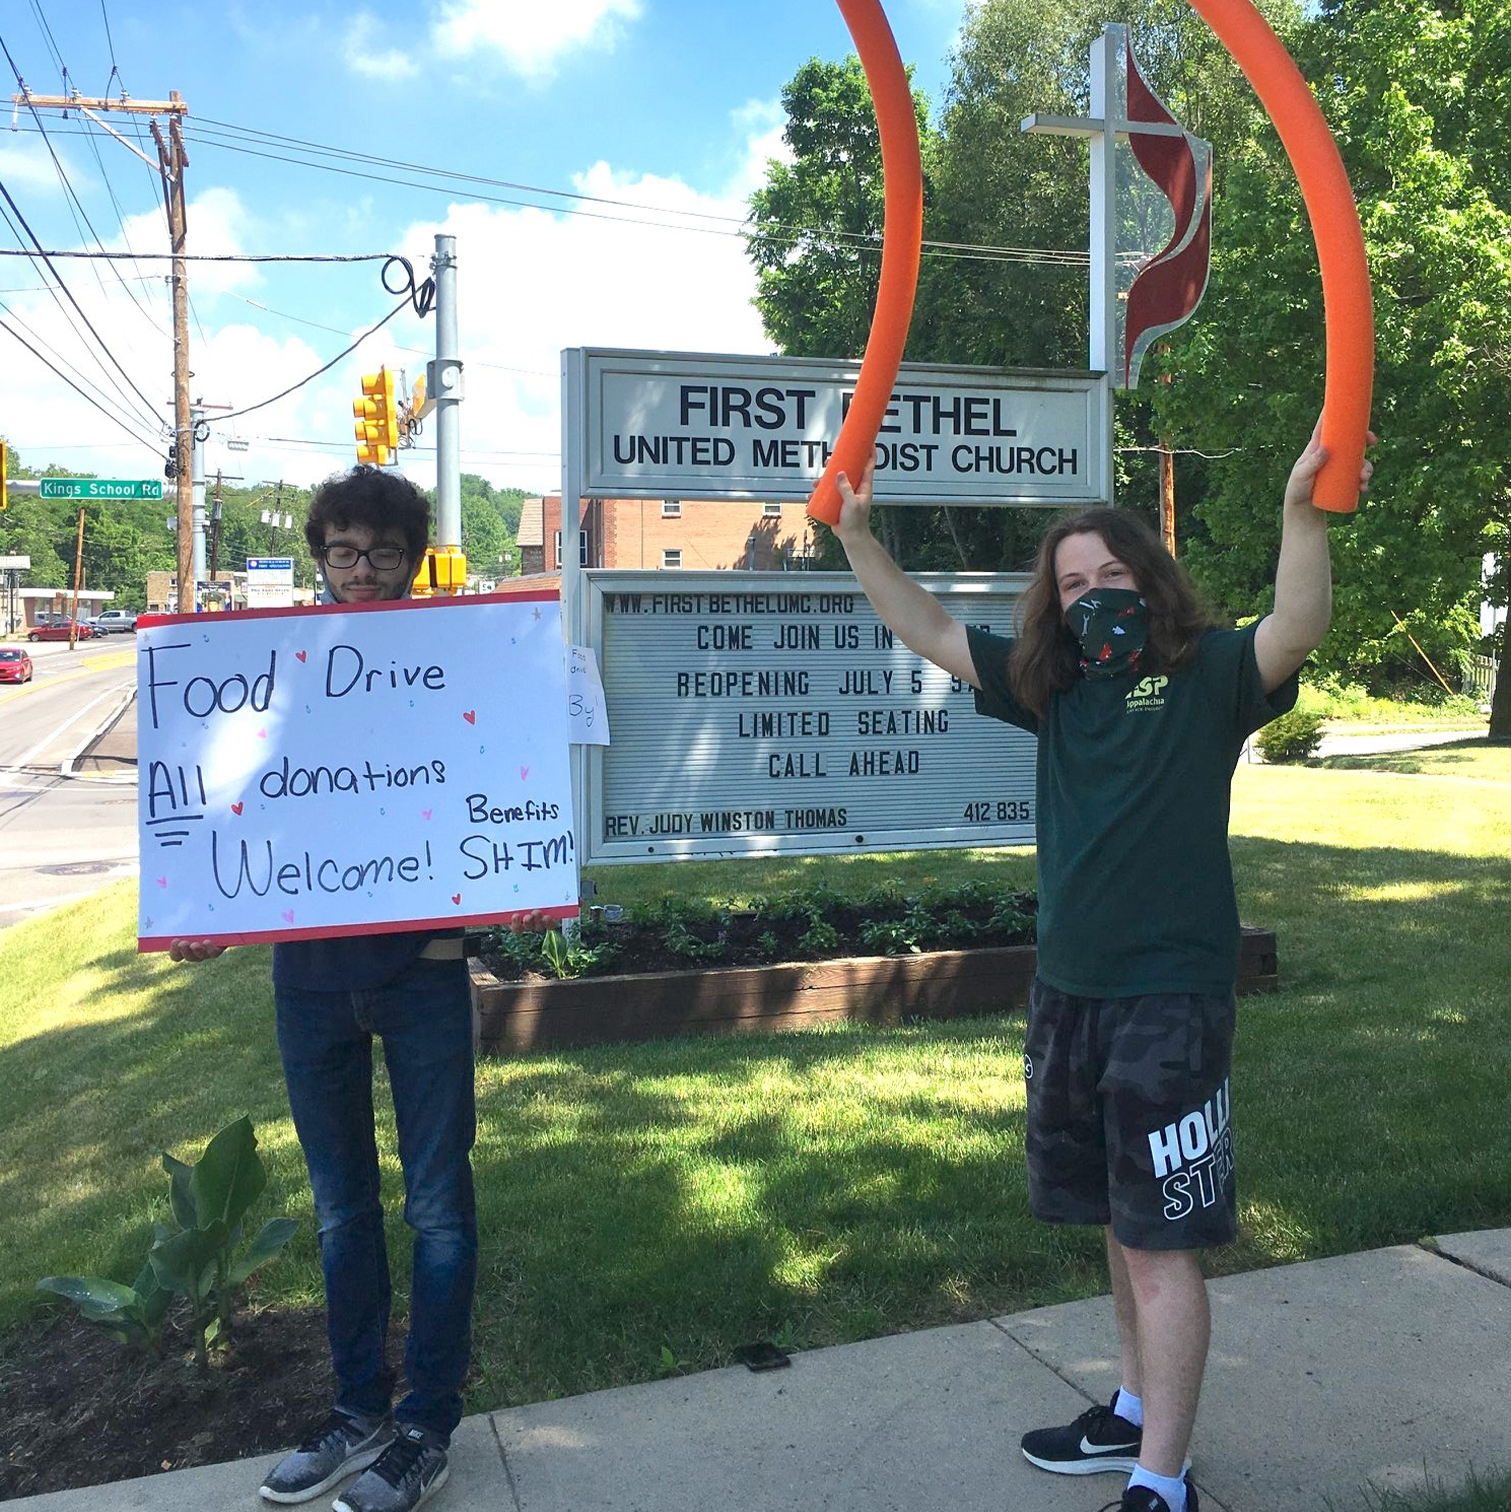 Teens hold up sign for food drive